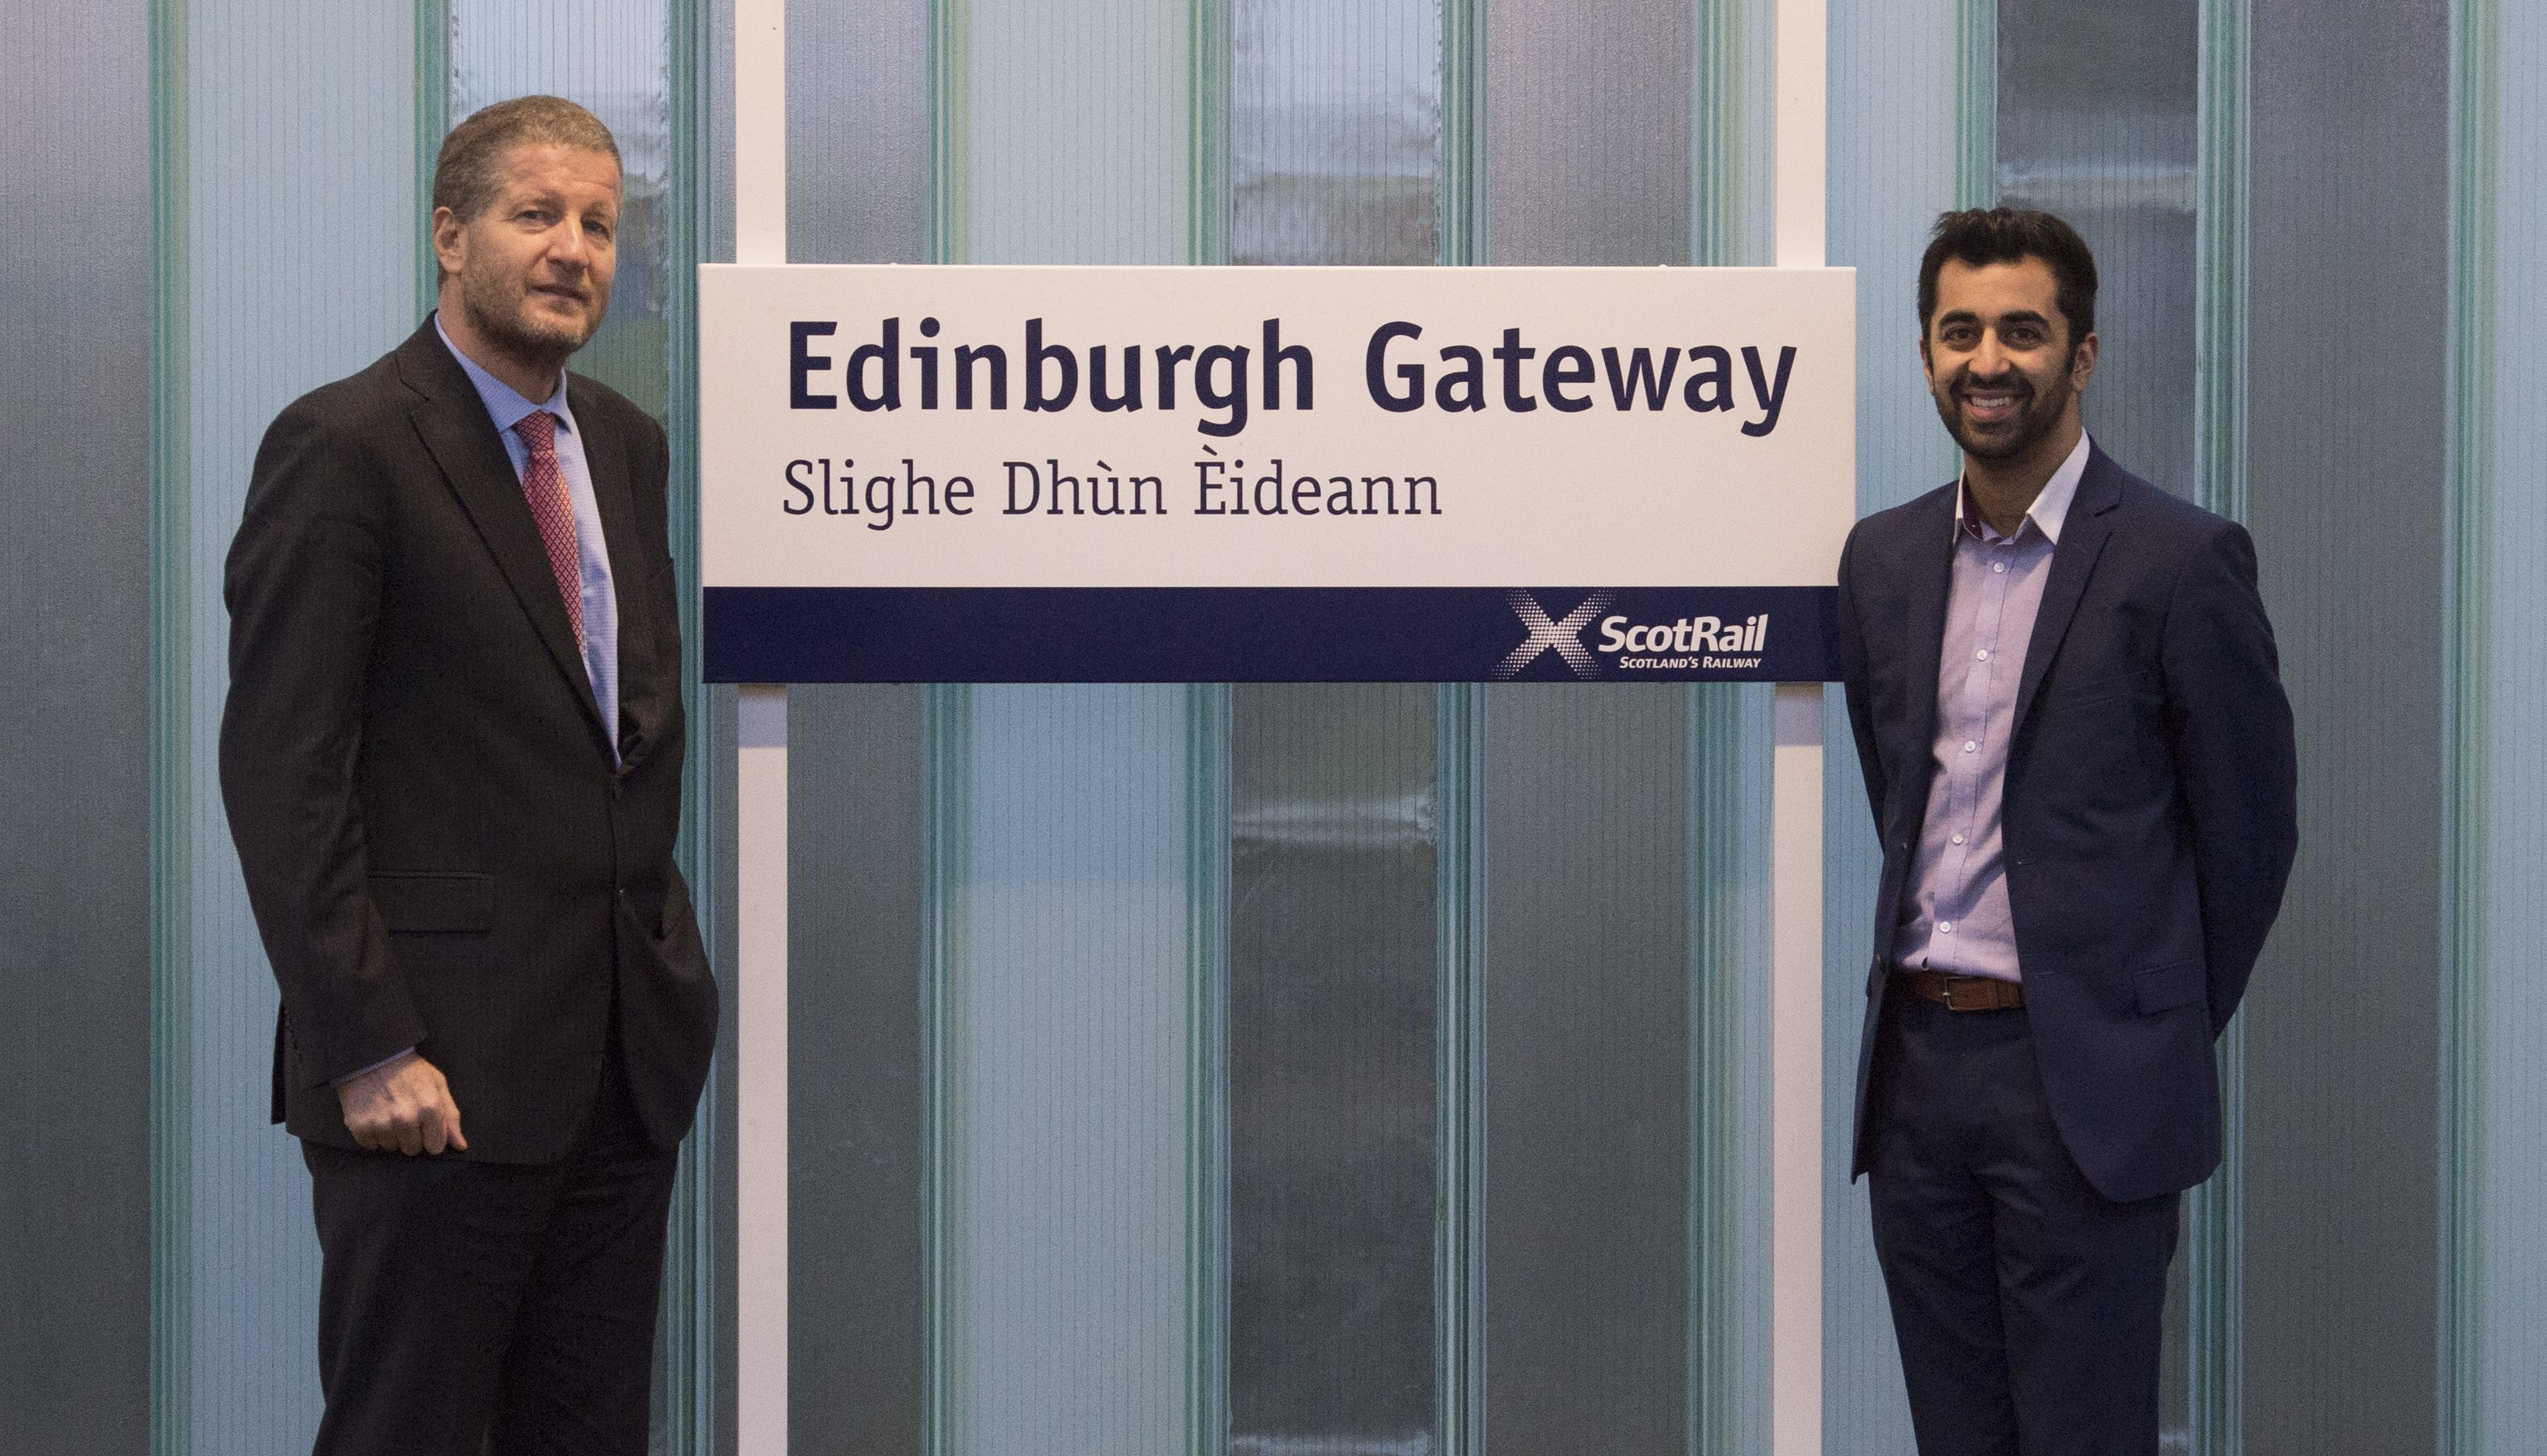 Former Scotrail Alliance managing director Phil Verster (left) joins Transport Minister Humza Yousaf as the Edinburgh Gateway Station is officially opened (PA)